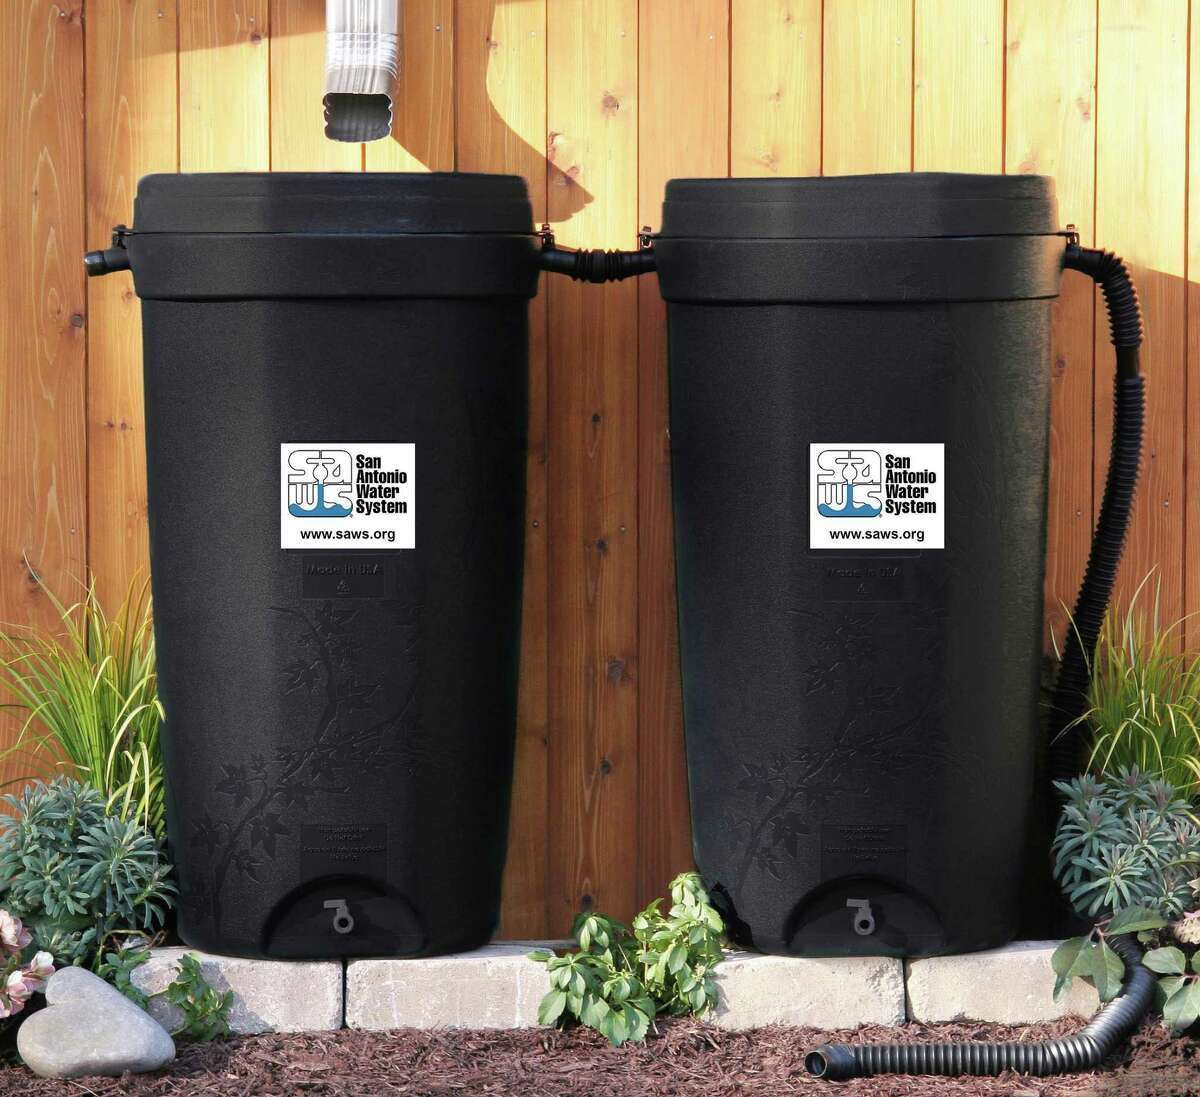 A rain water collection system